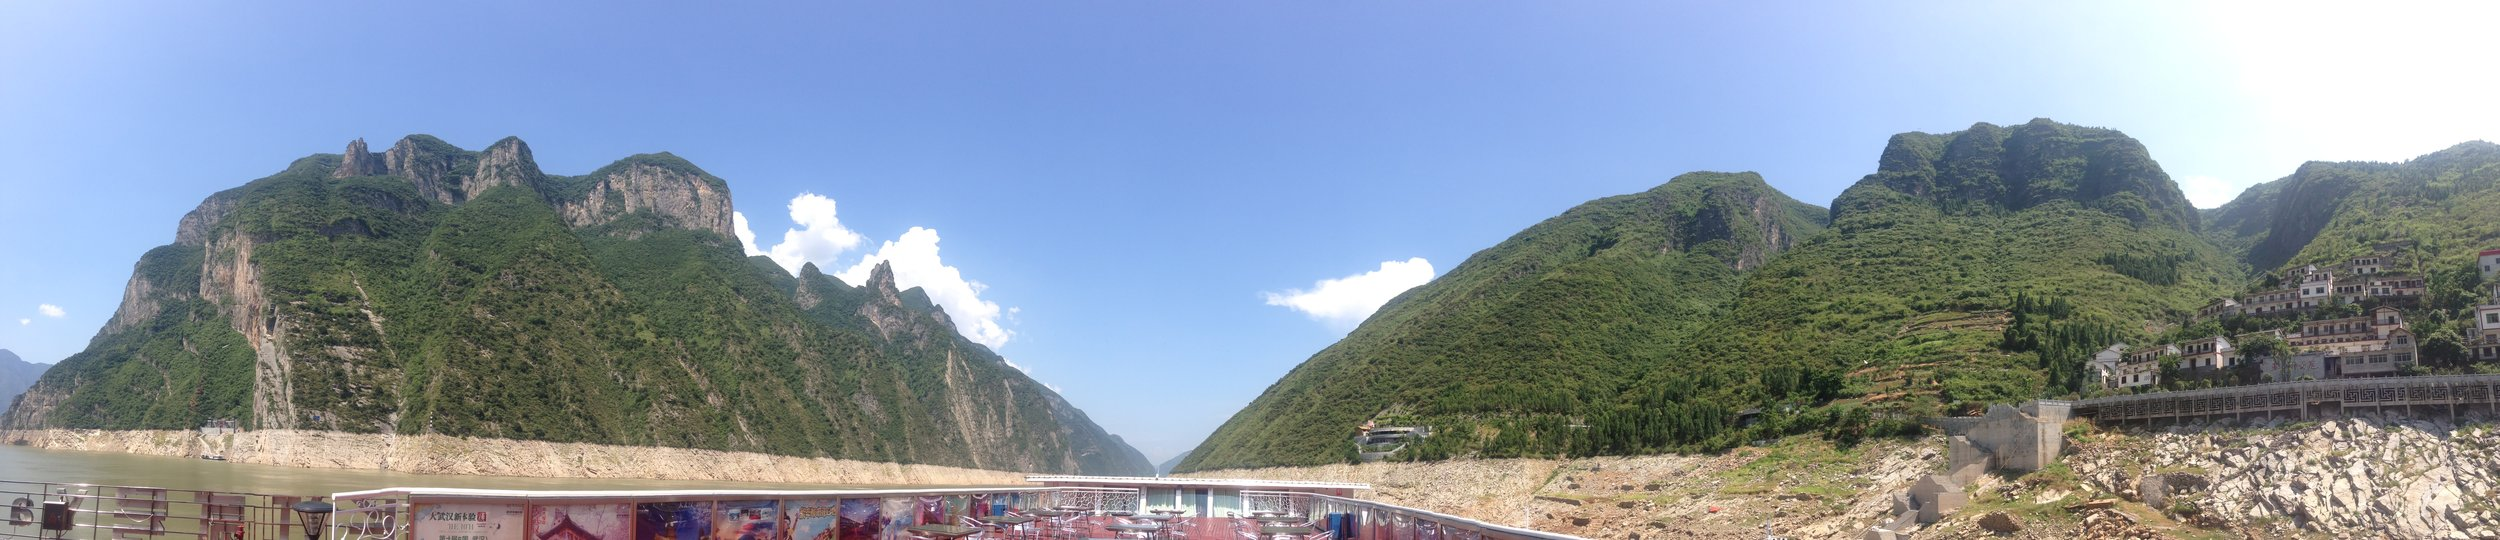 Cruising on the Yangtze River while passing Gorge two out of three